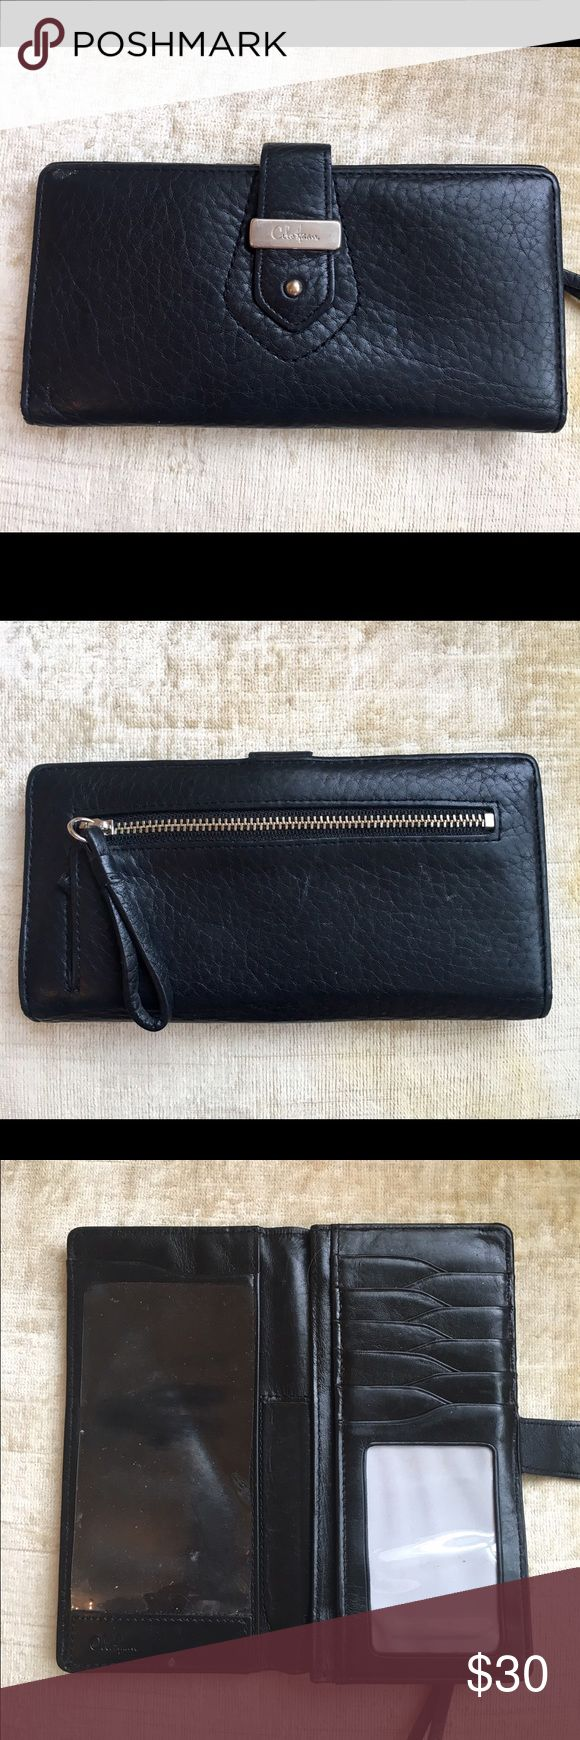 Cole haan black leather gloves - Cole Haan Wallet Gently Used Cole Haan Black Leather Wallet With Silver Metal Accents Cole